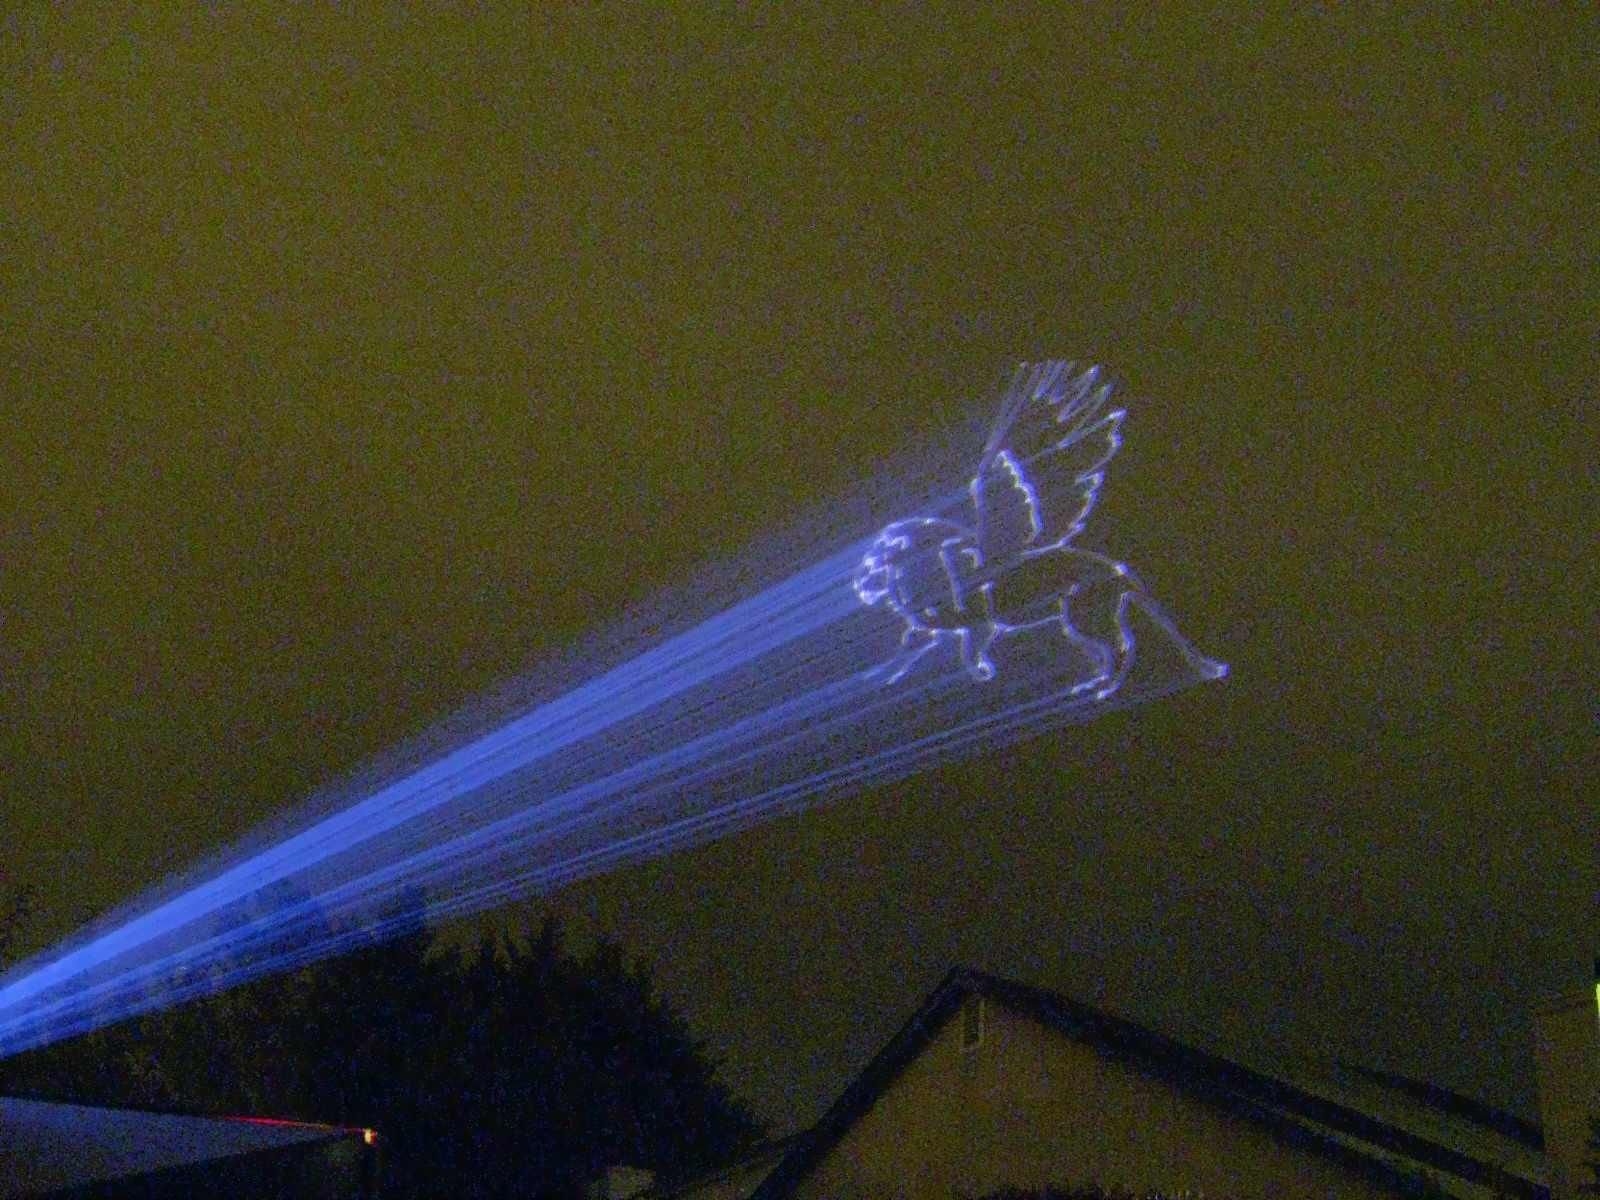 Sky Animated Laser Graphics Animation From Clouds In The Sky Extreme High Power Laser Display Rental Services Http Www Tribalexistance Com